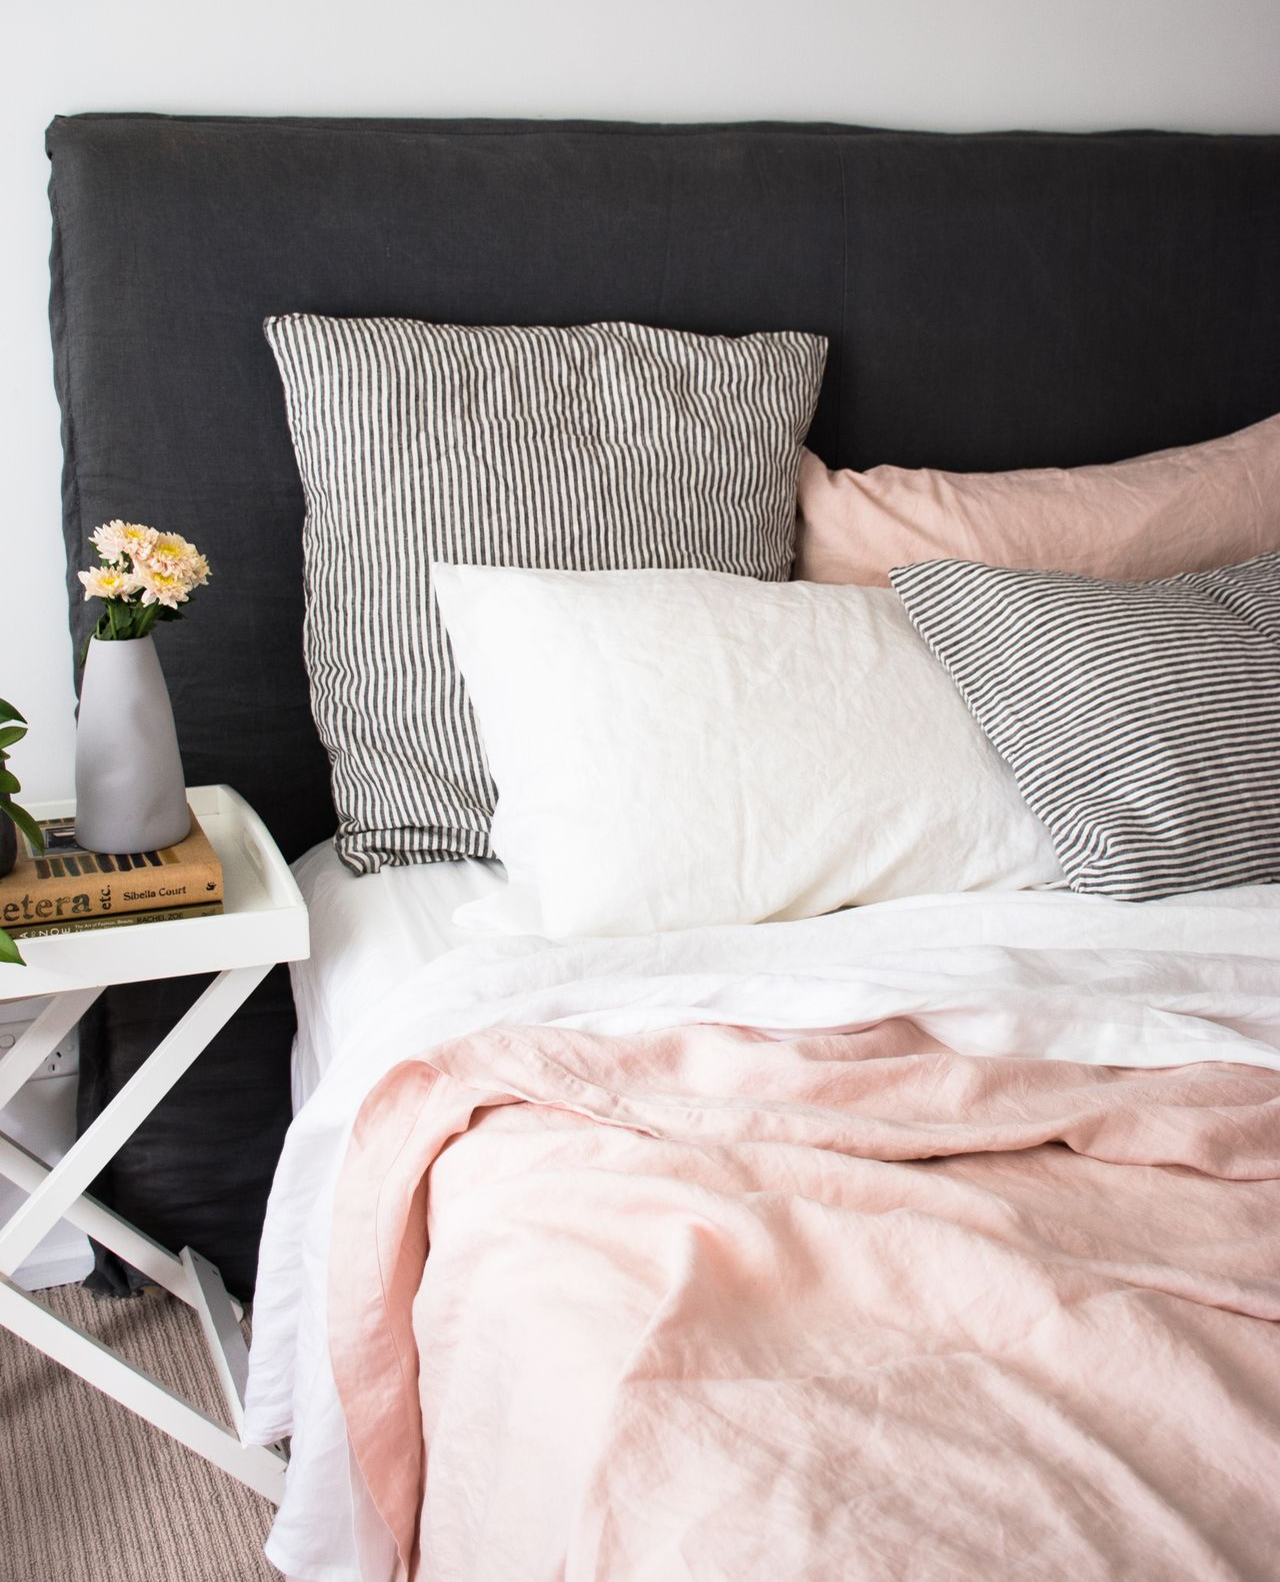 The Most Beautiful Soft Feminine Colour Paletter With Our Blush White And Charcoal Stripe Linen Sheets